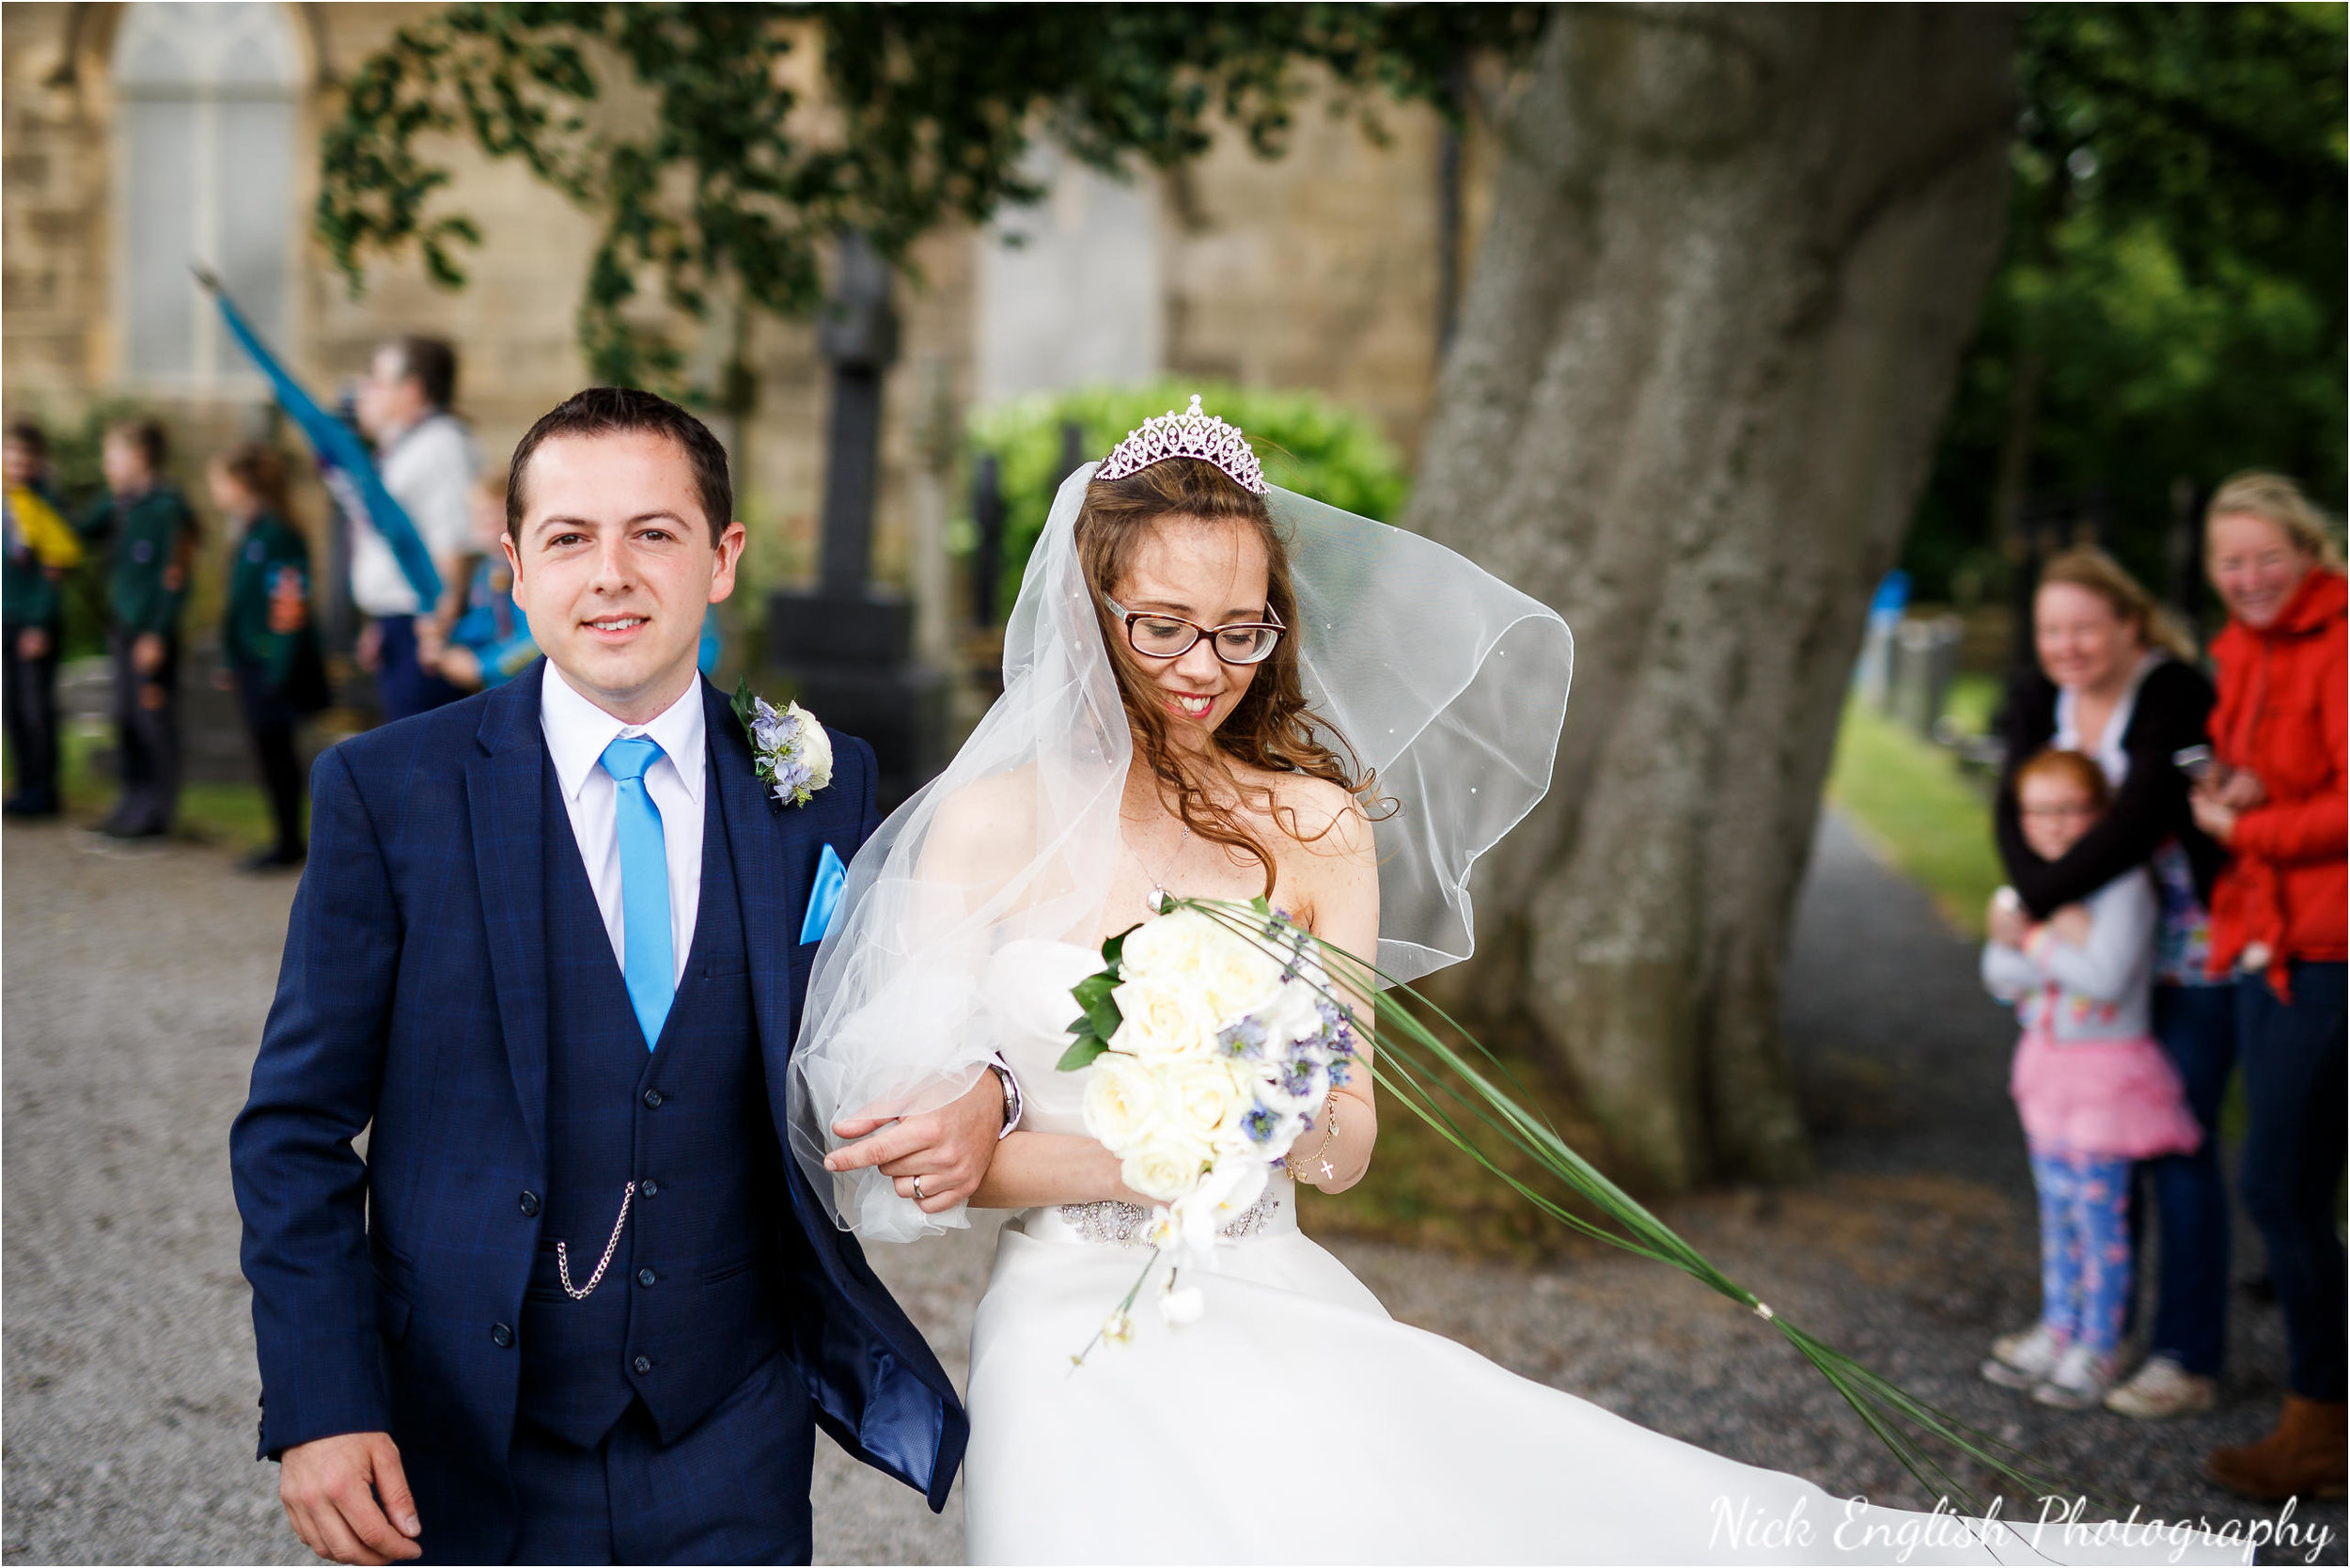 Derek Wright Georgina Wedding Photographs 94.jpg